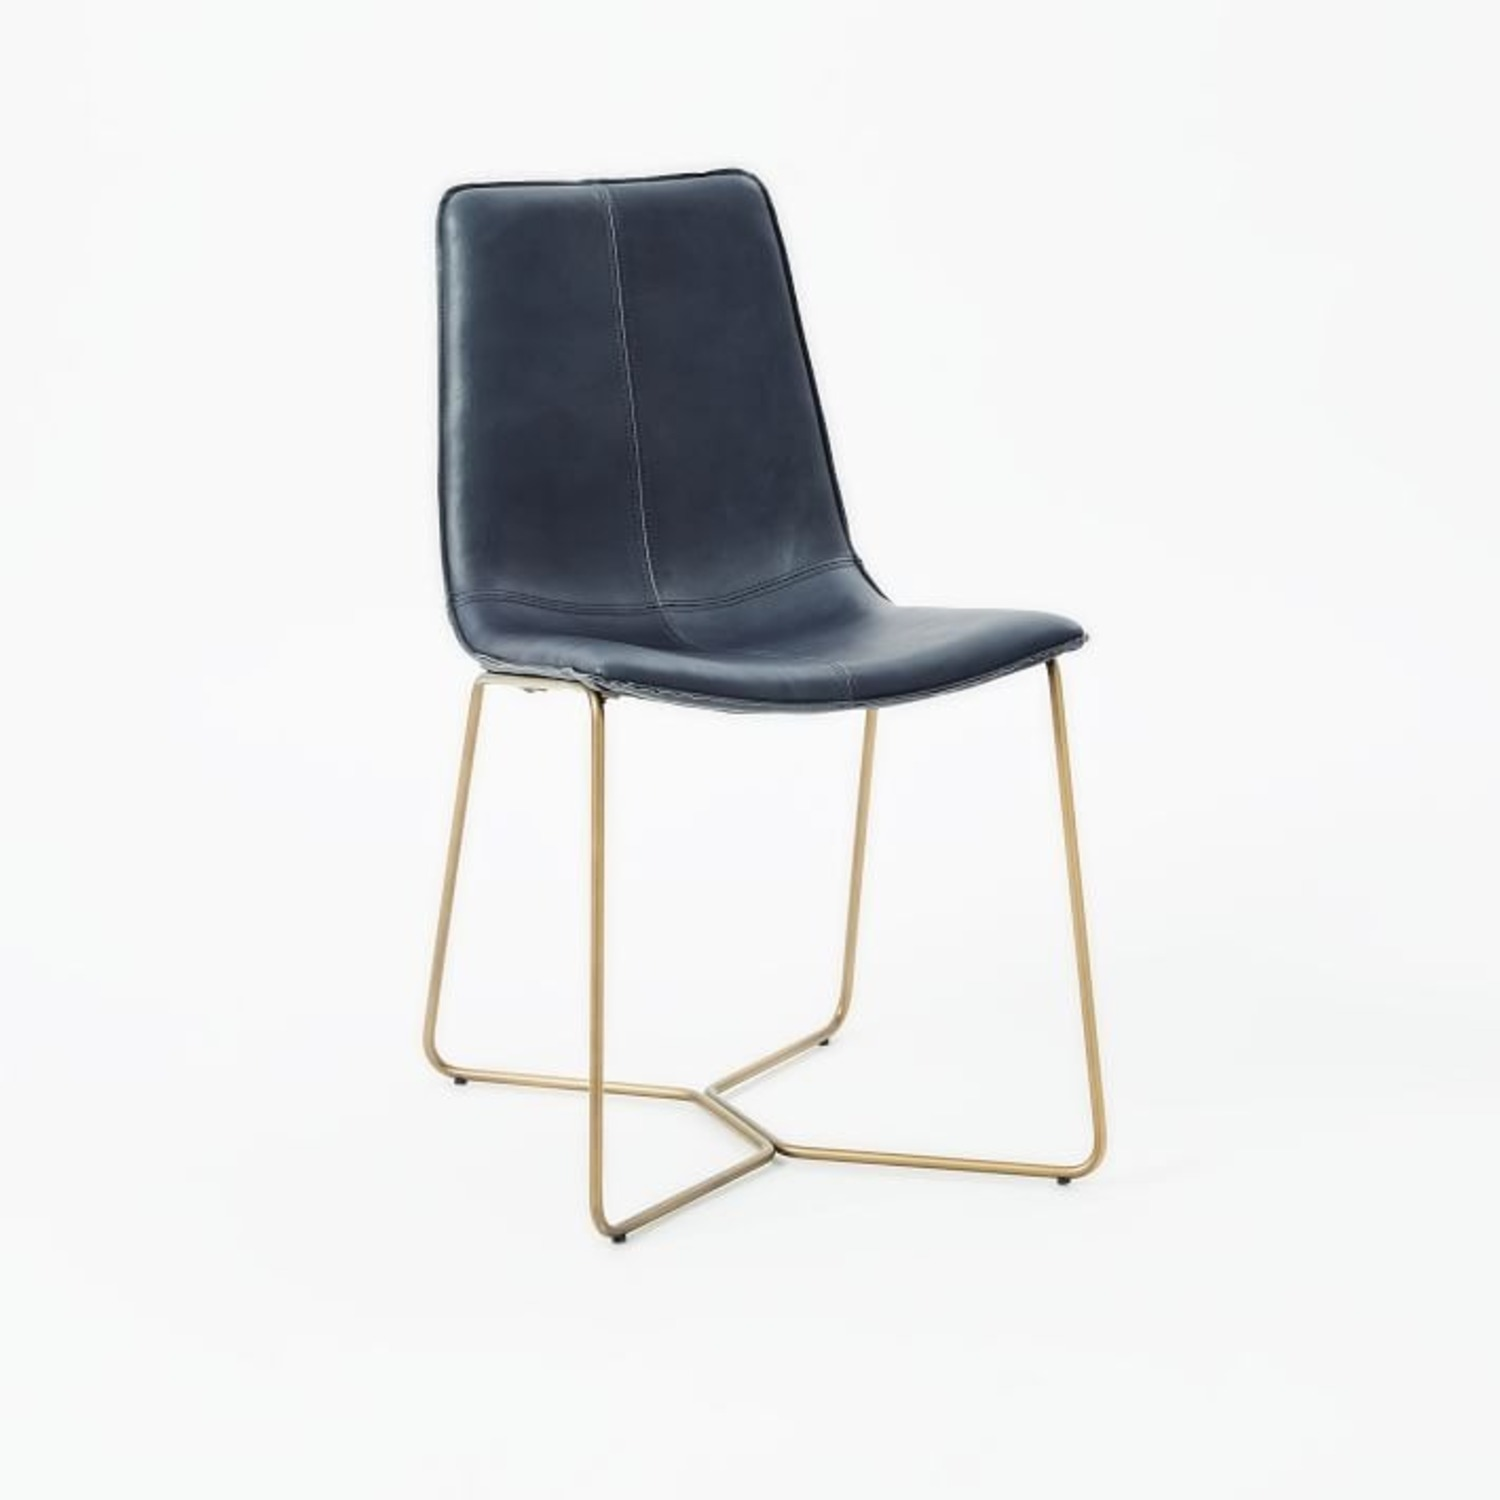 West Elm Slope Leather Dining Chair - image-1